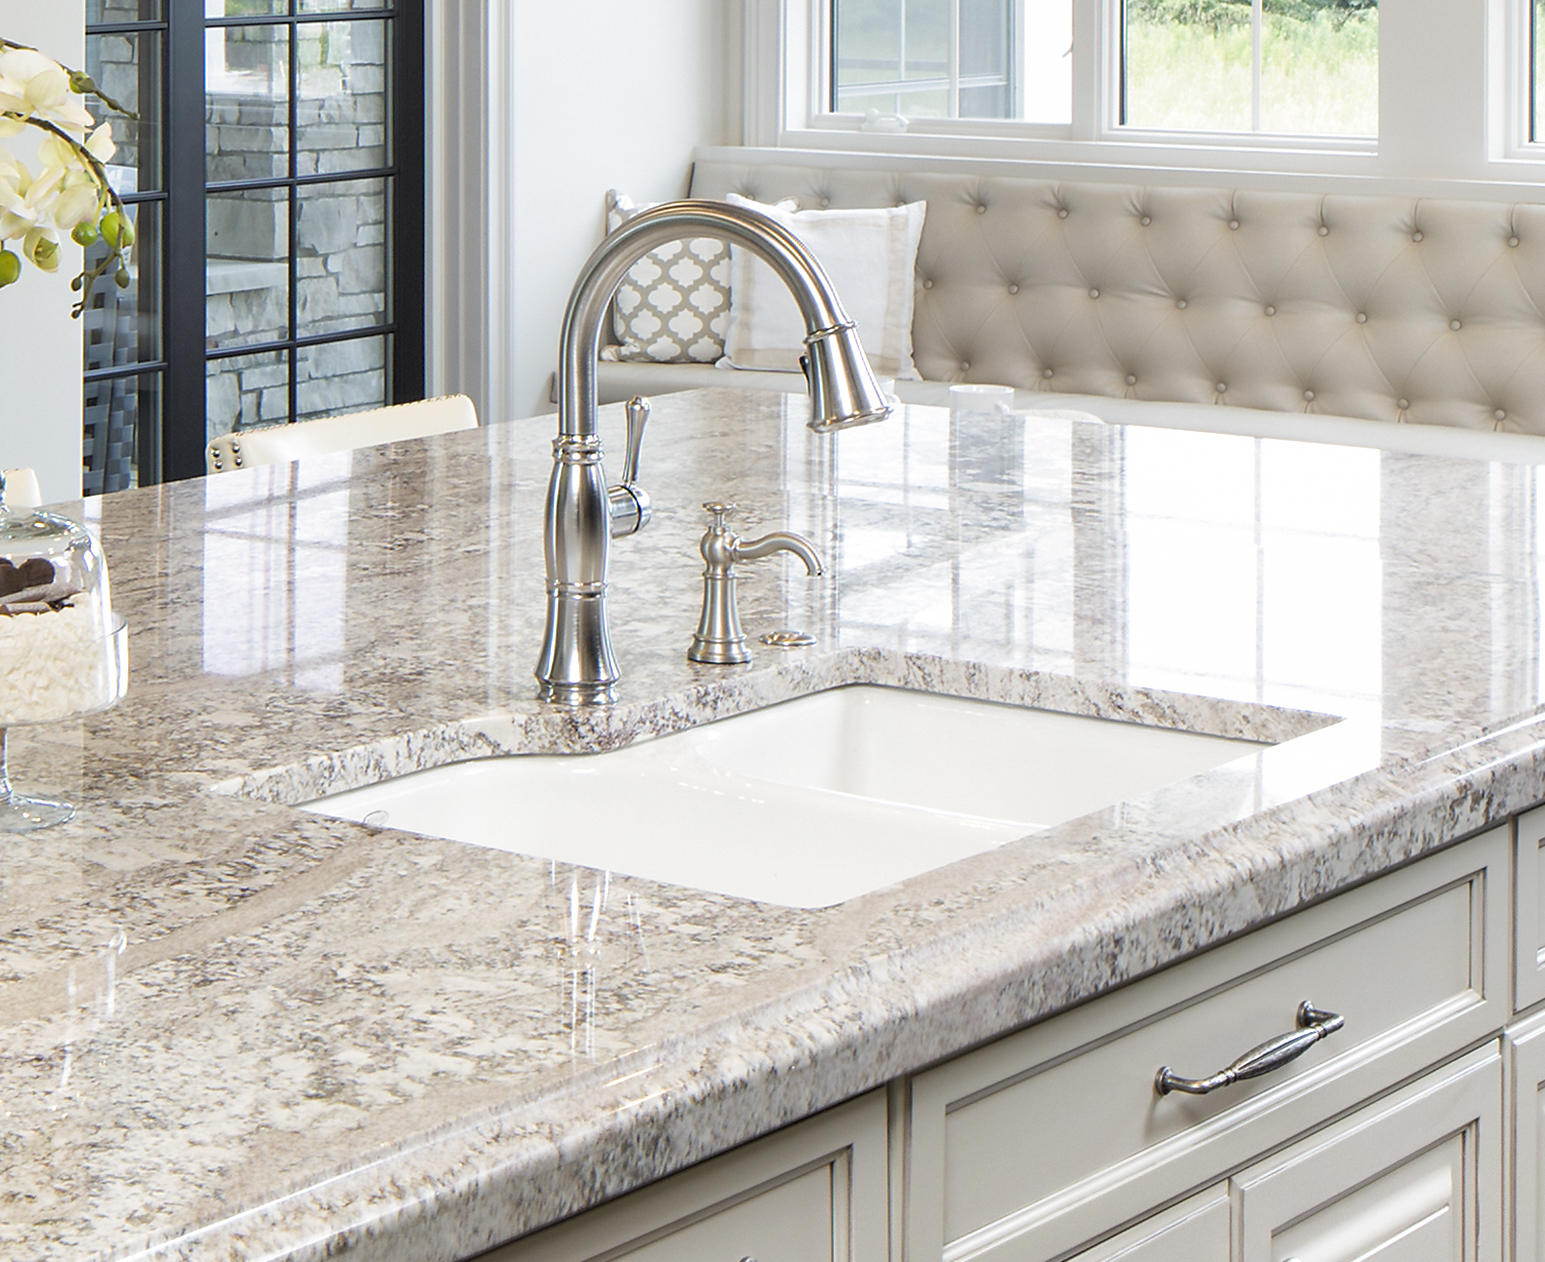 kitchen sink set in granite countertop by cu0026d granite minneapolis mn kitchen sinks for countertops s11 sinks